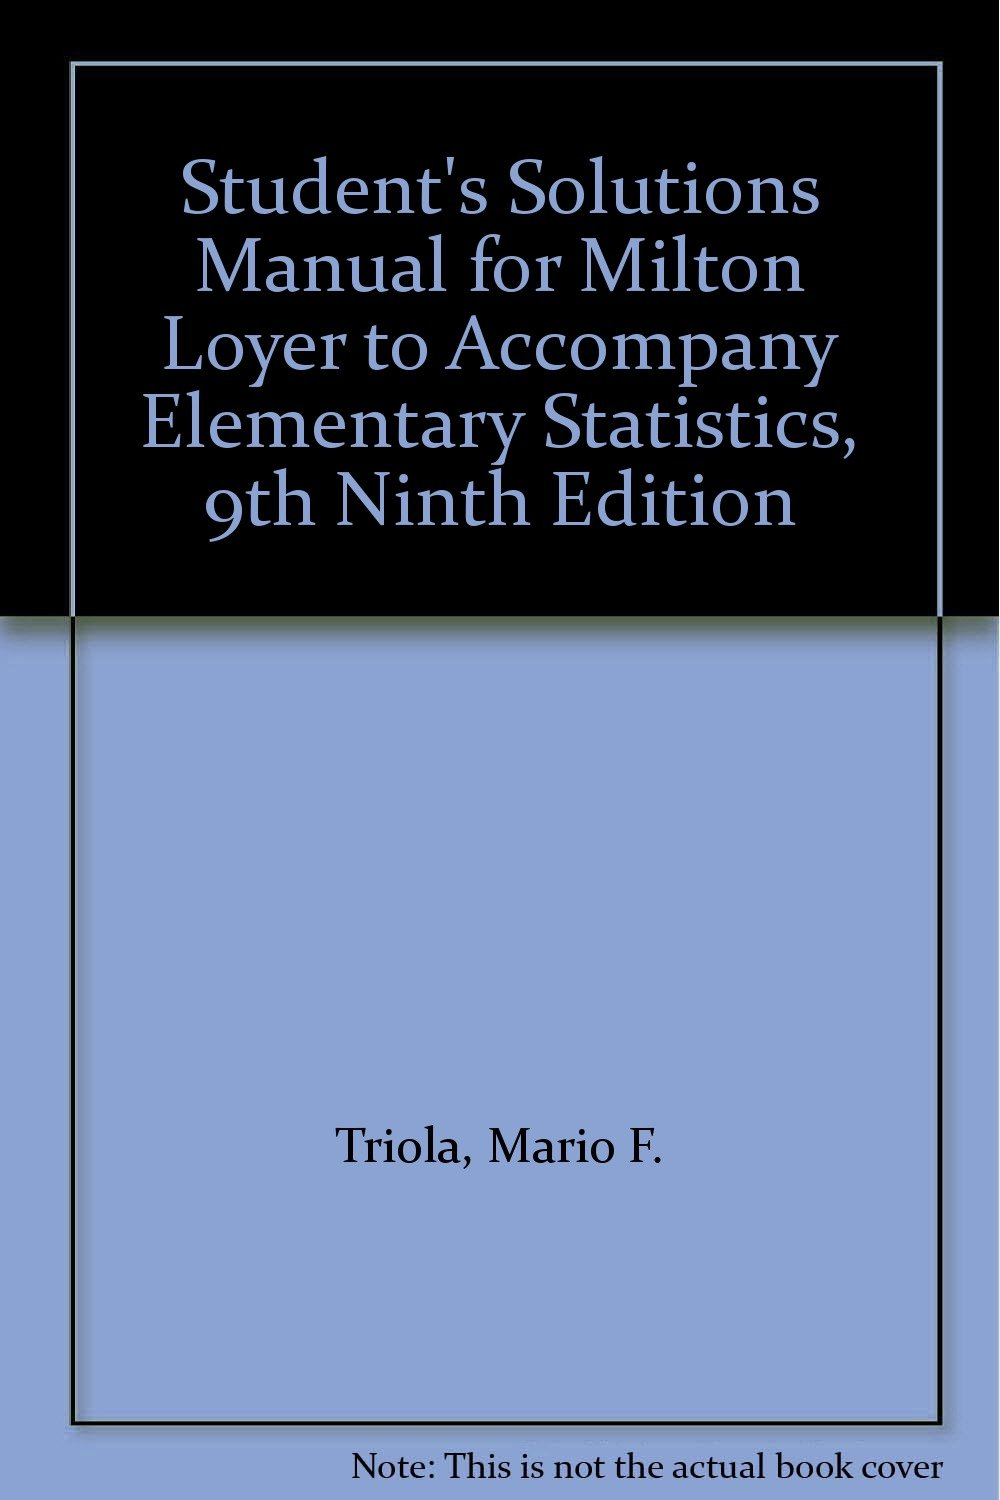 Student's Solutions Manual for Milton Loyer to Accompany Elementary  Statistics, 9th Ninth Edition: Mario F. Triola: Amazon.com: Books